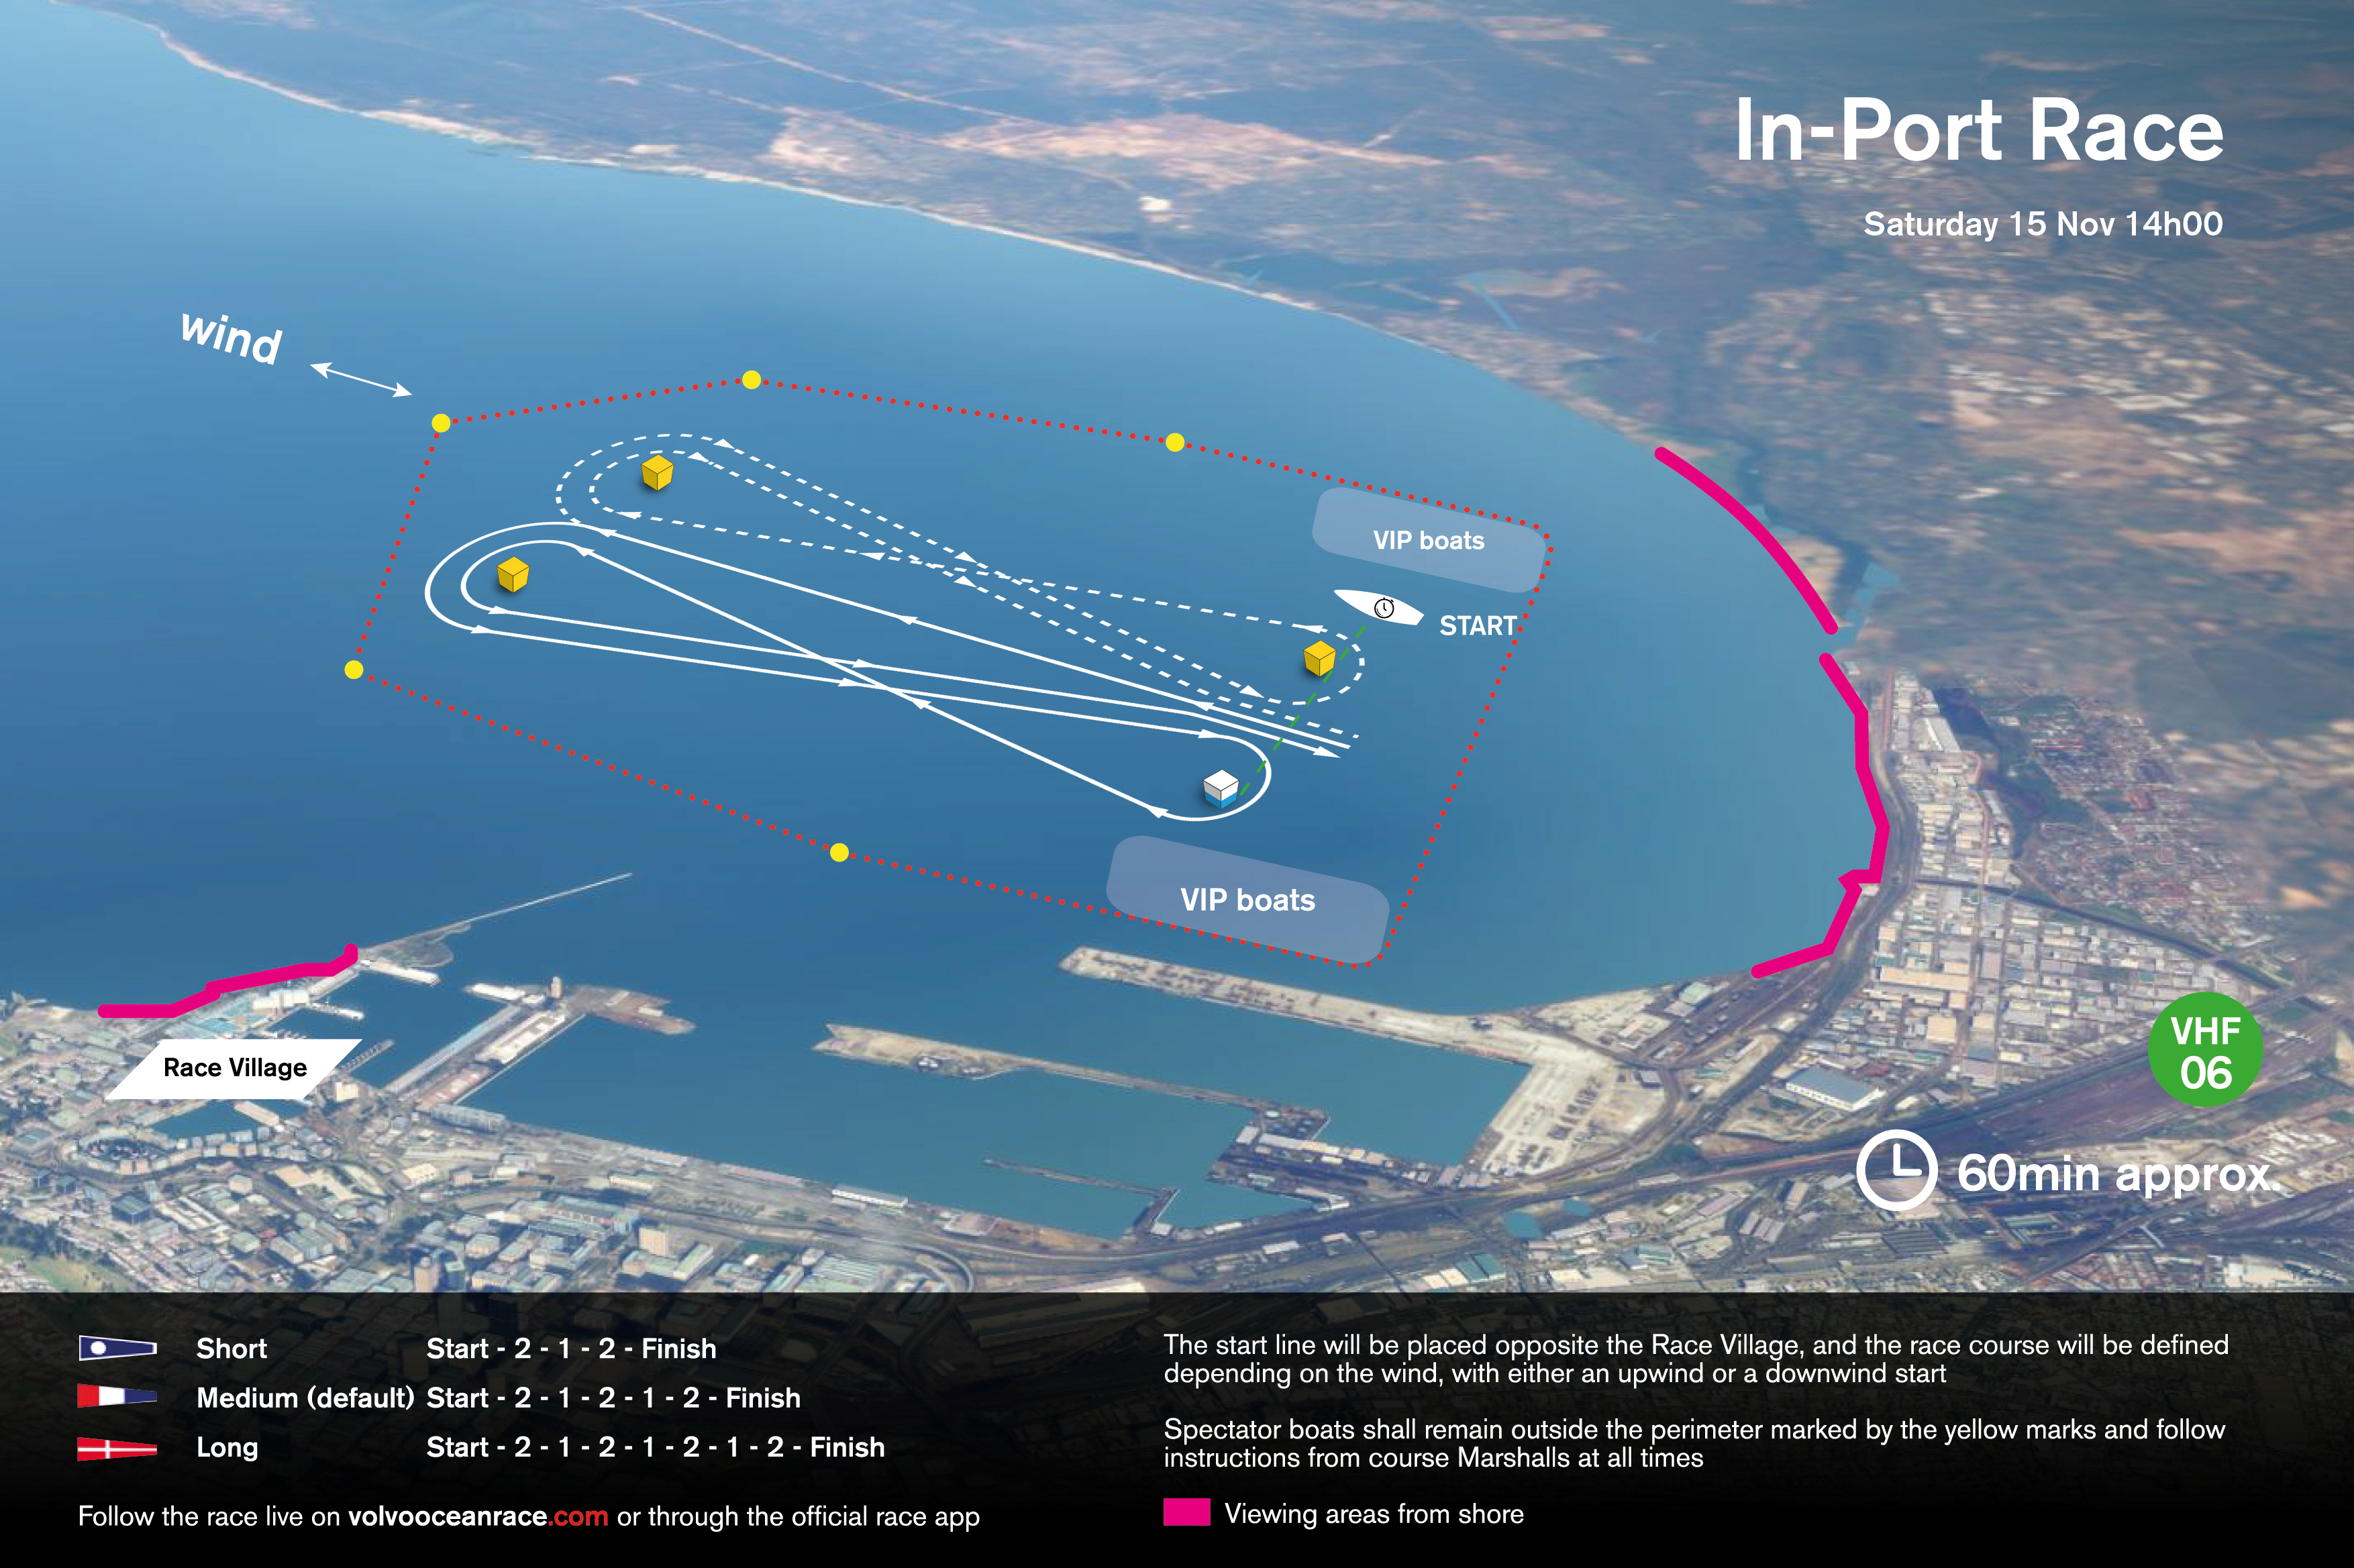 IN_PORT RACE COURSE MAP CAPETOWN